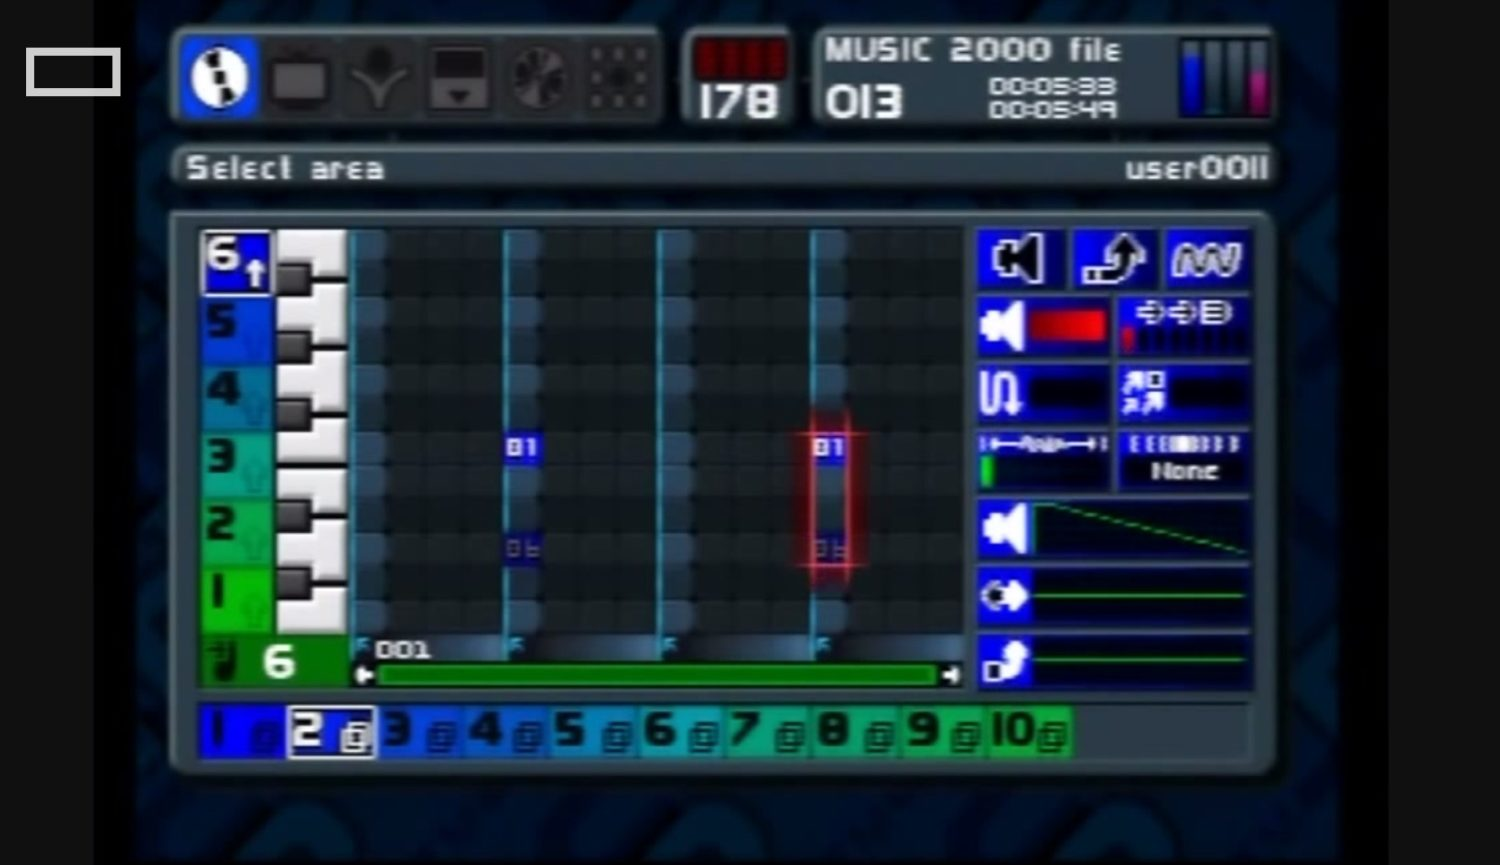 Retro Review: Making Tracks With Music 2000 For PlayStation 1